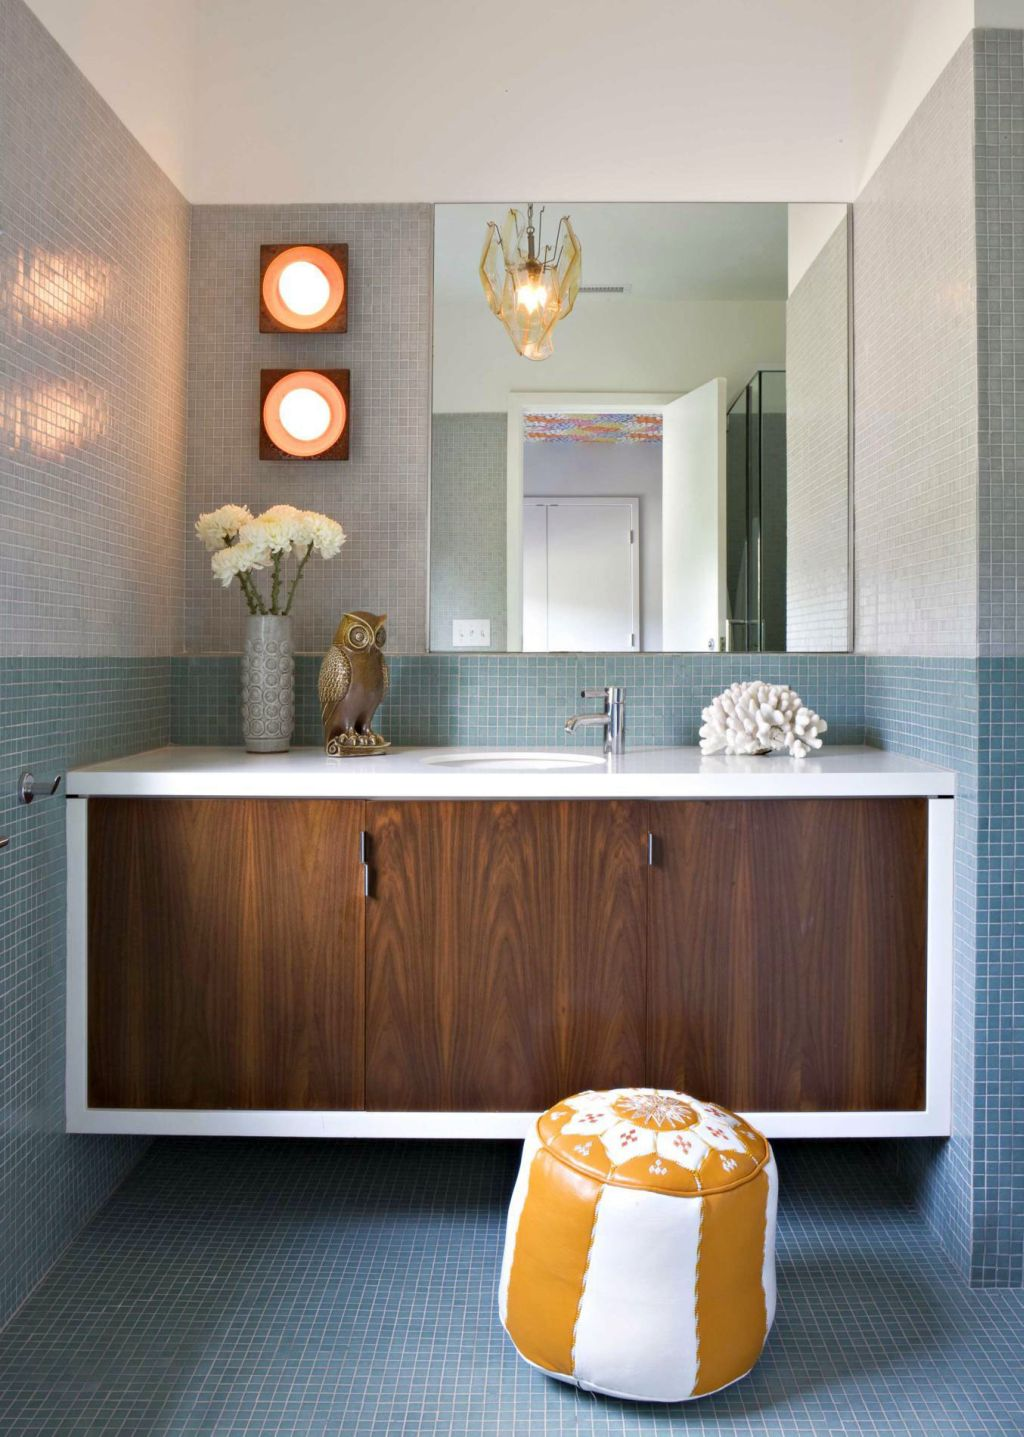 20 dazzling bathroom vanity lighting ideas for 2 bathroom